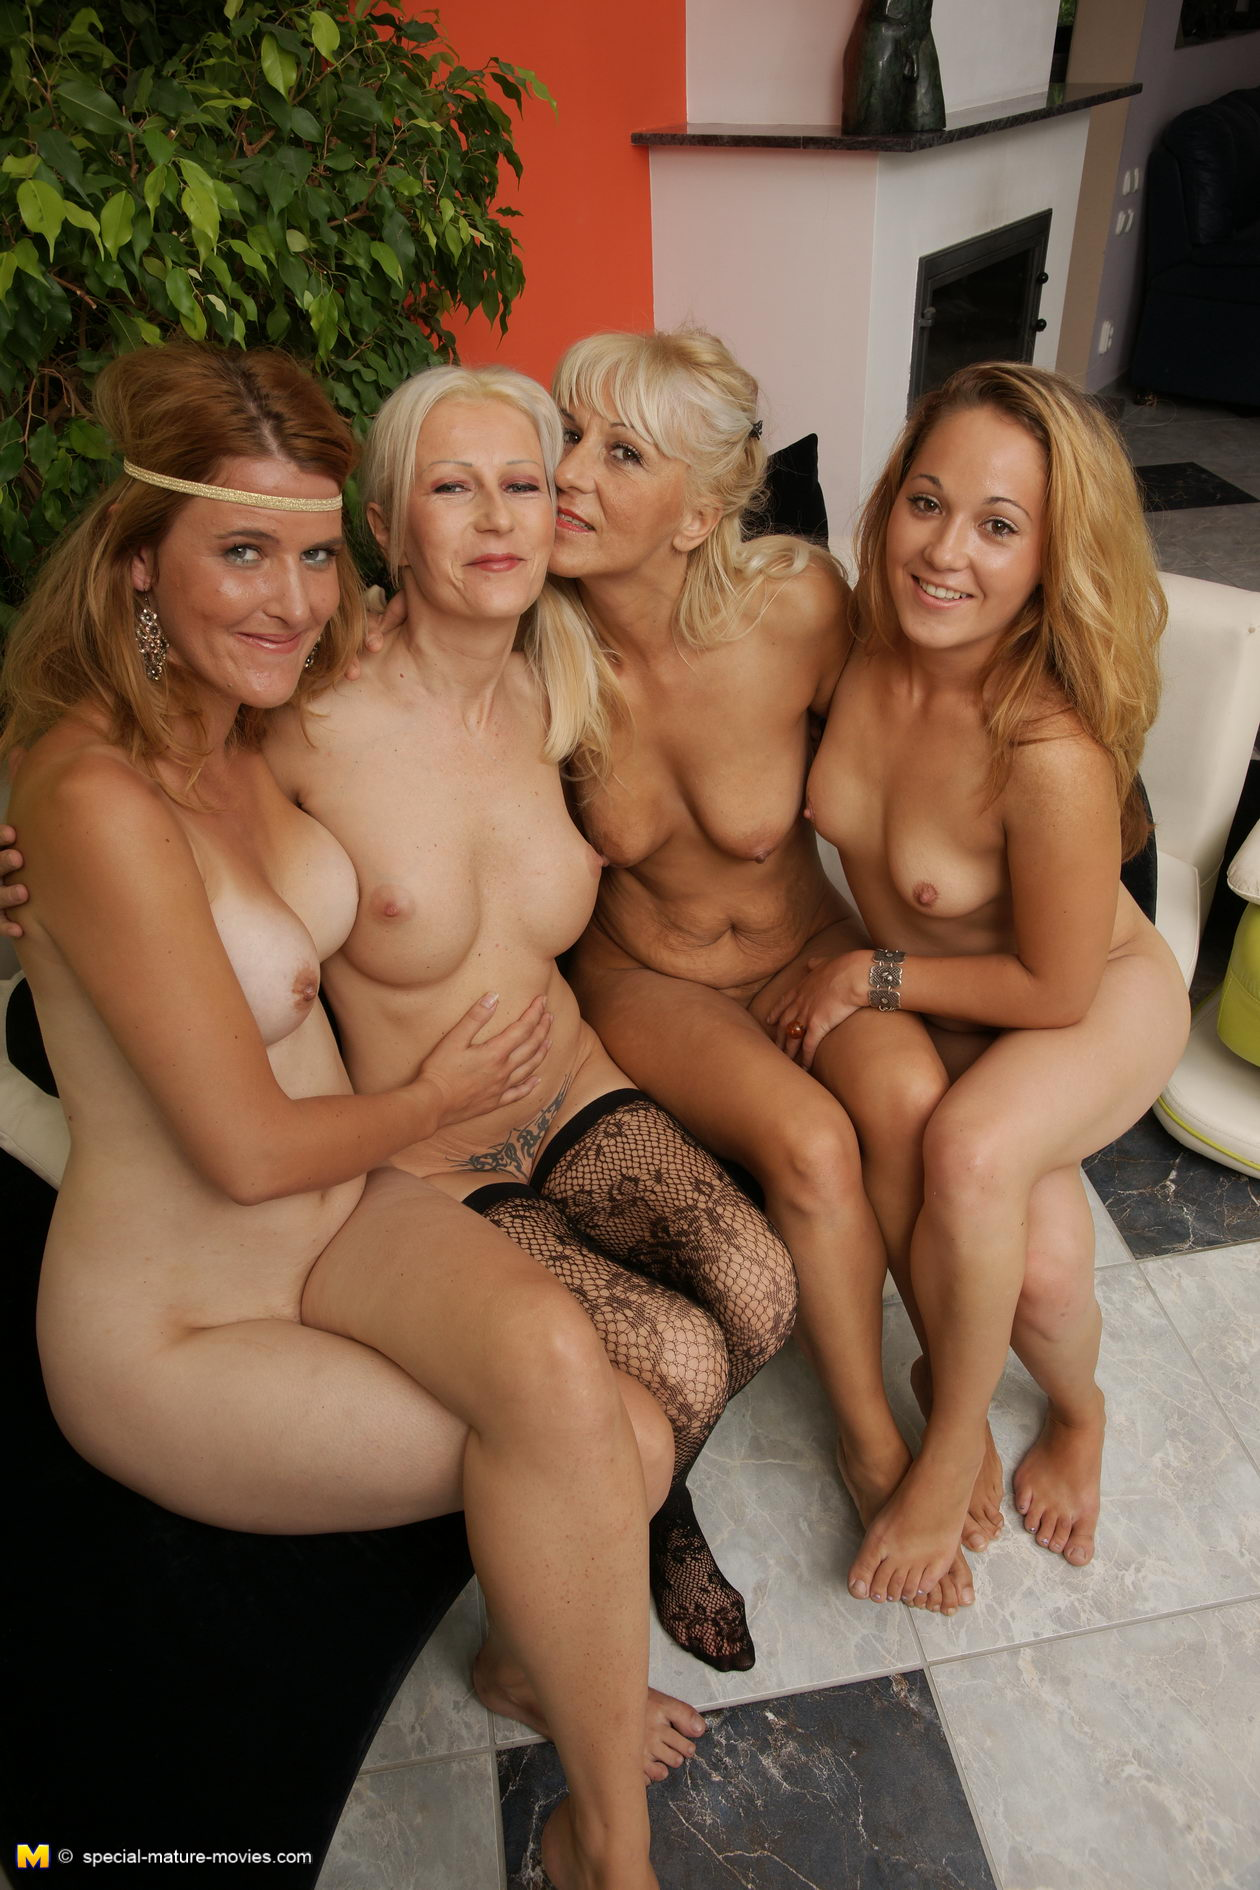 Mature group nude milf